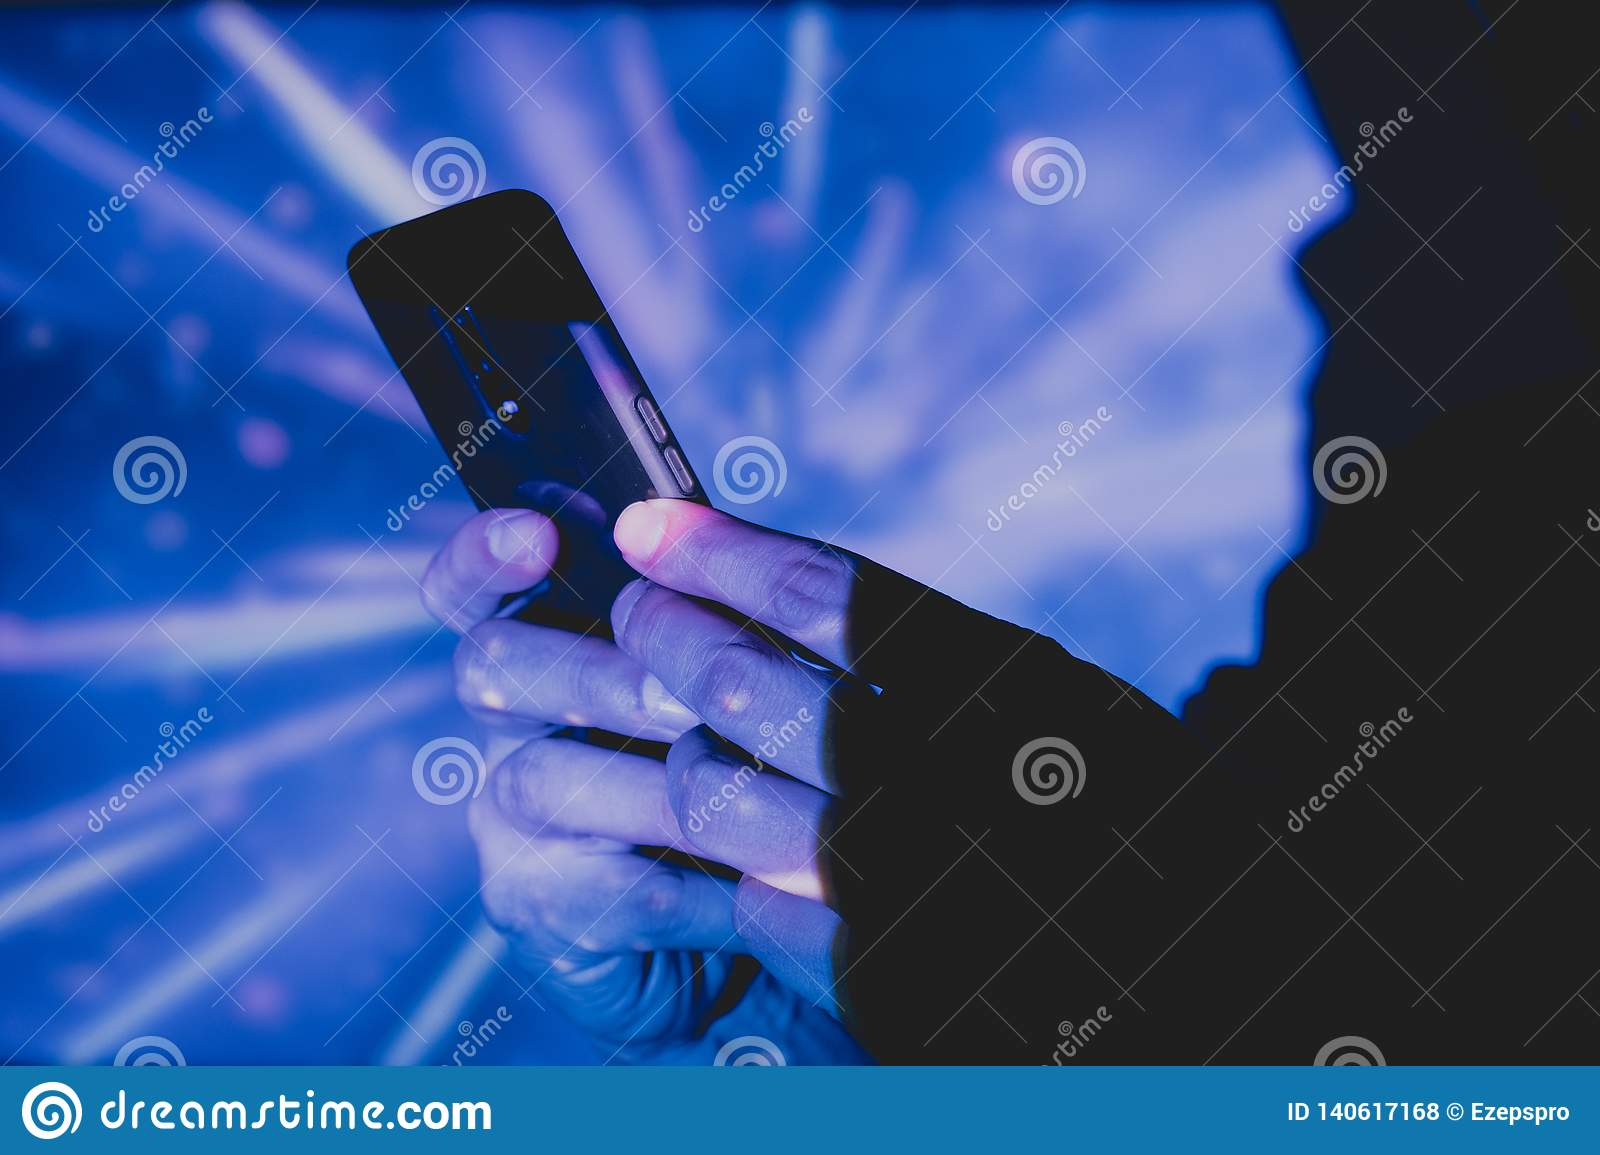 Man with smart phone in hands